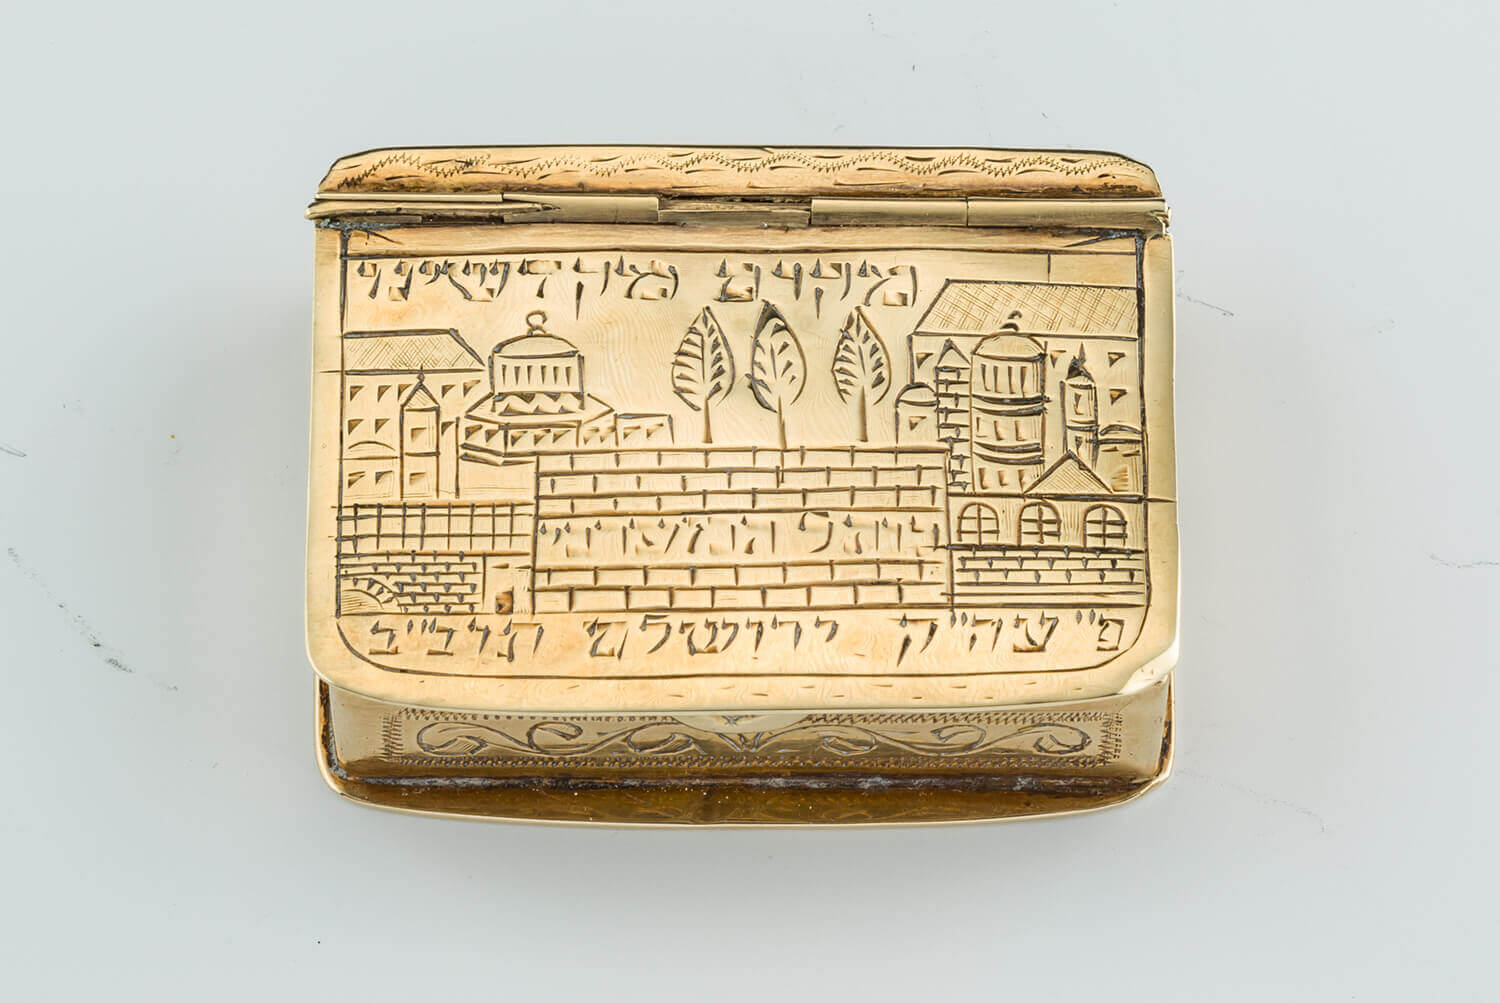 084. A GOLD SNUFF BOX